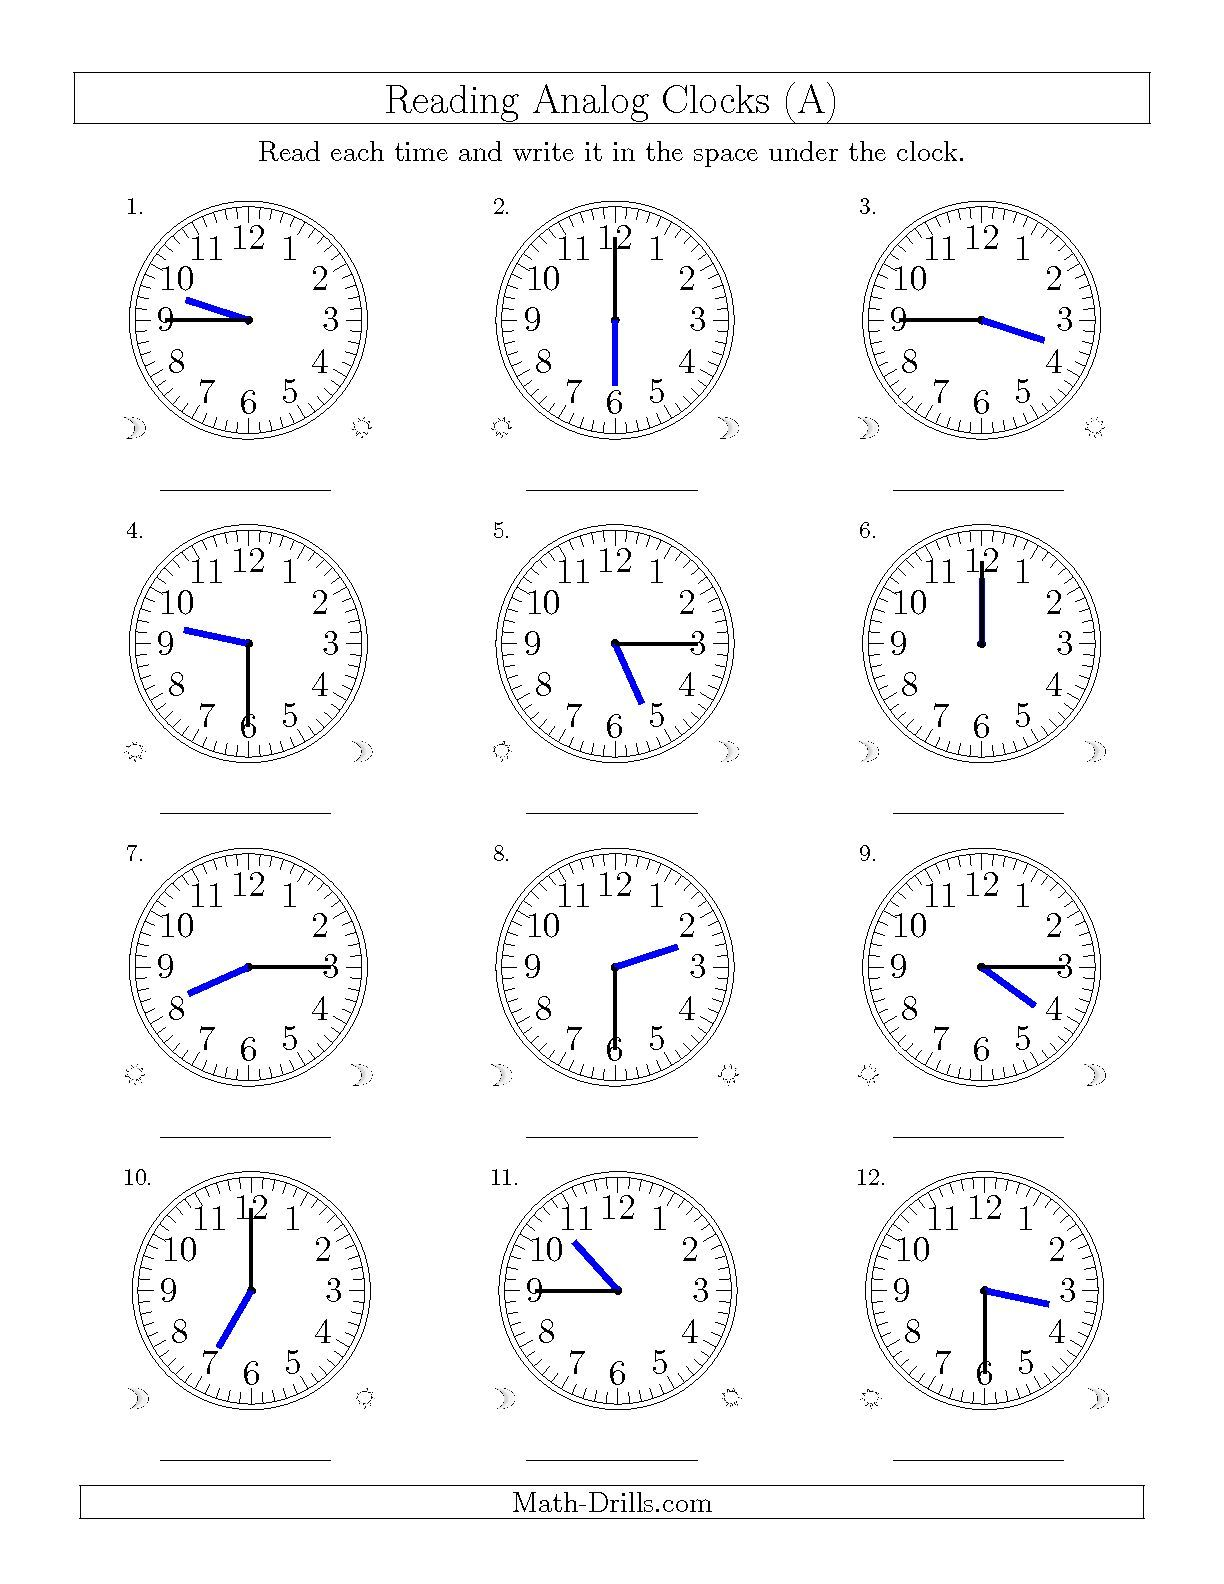 The Reading Time on 12 Hour Analog Clocks in 15 Minute